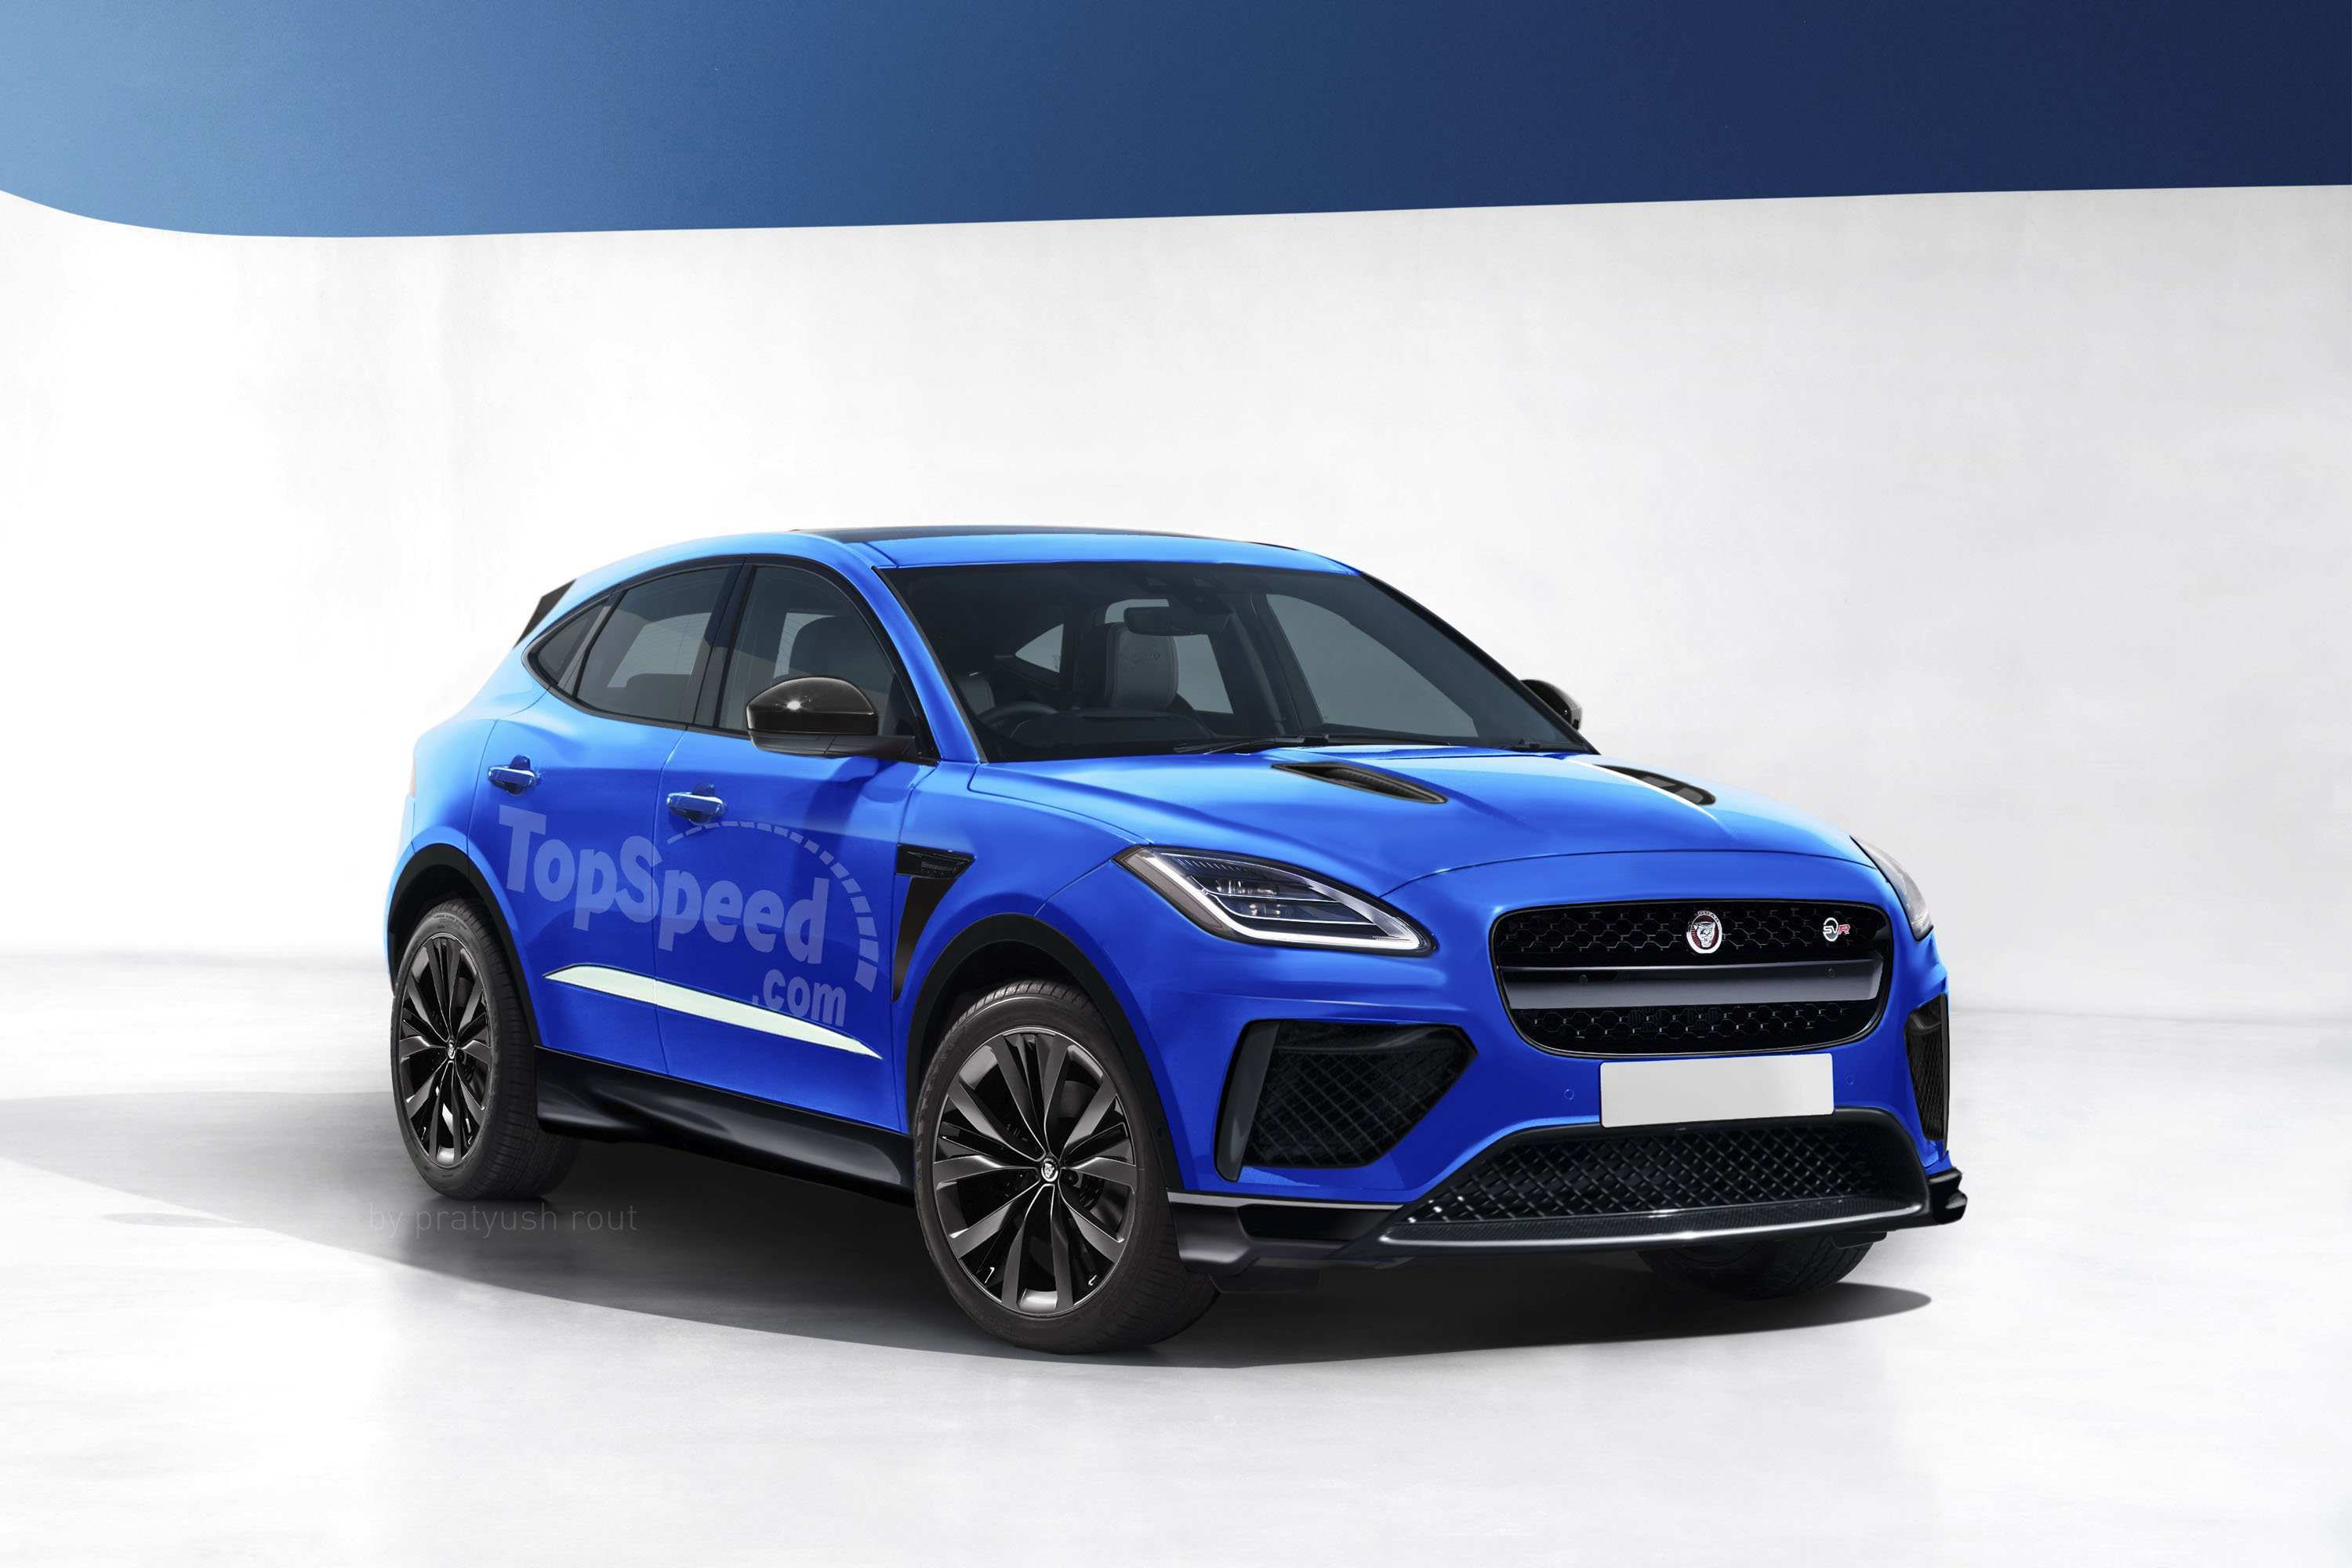 71 Gallery of 2019 Jaguar E Pace 2 Engine for 2019 Jaguar E Pace 2